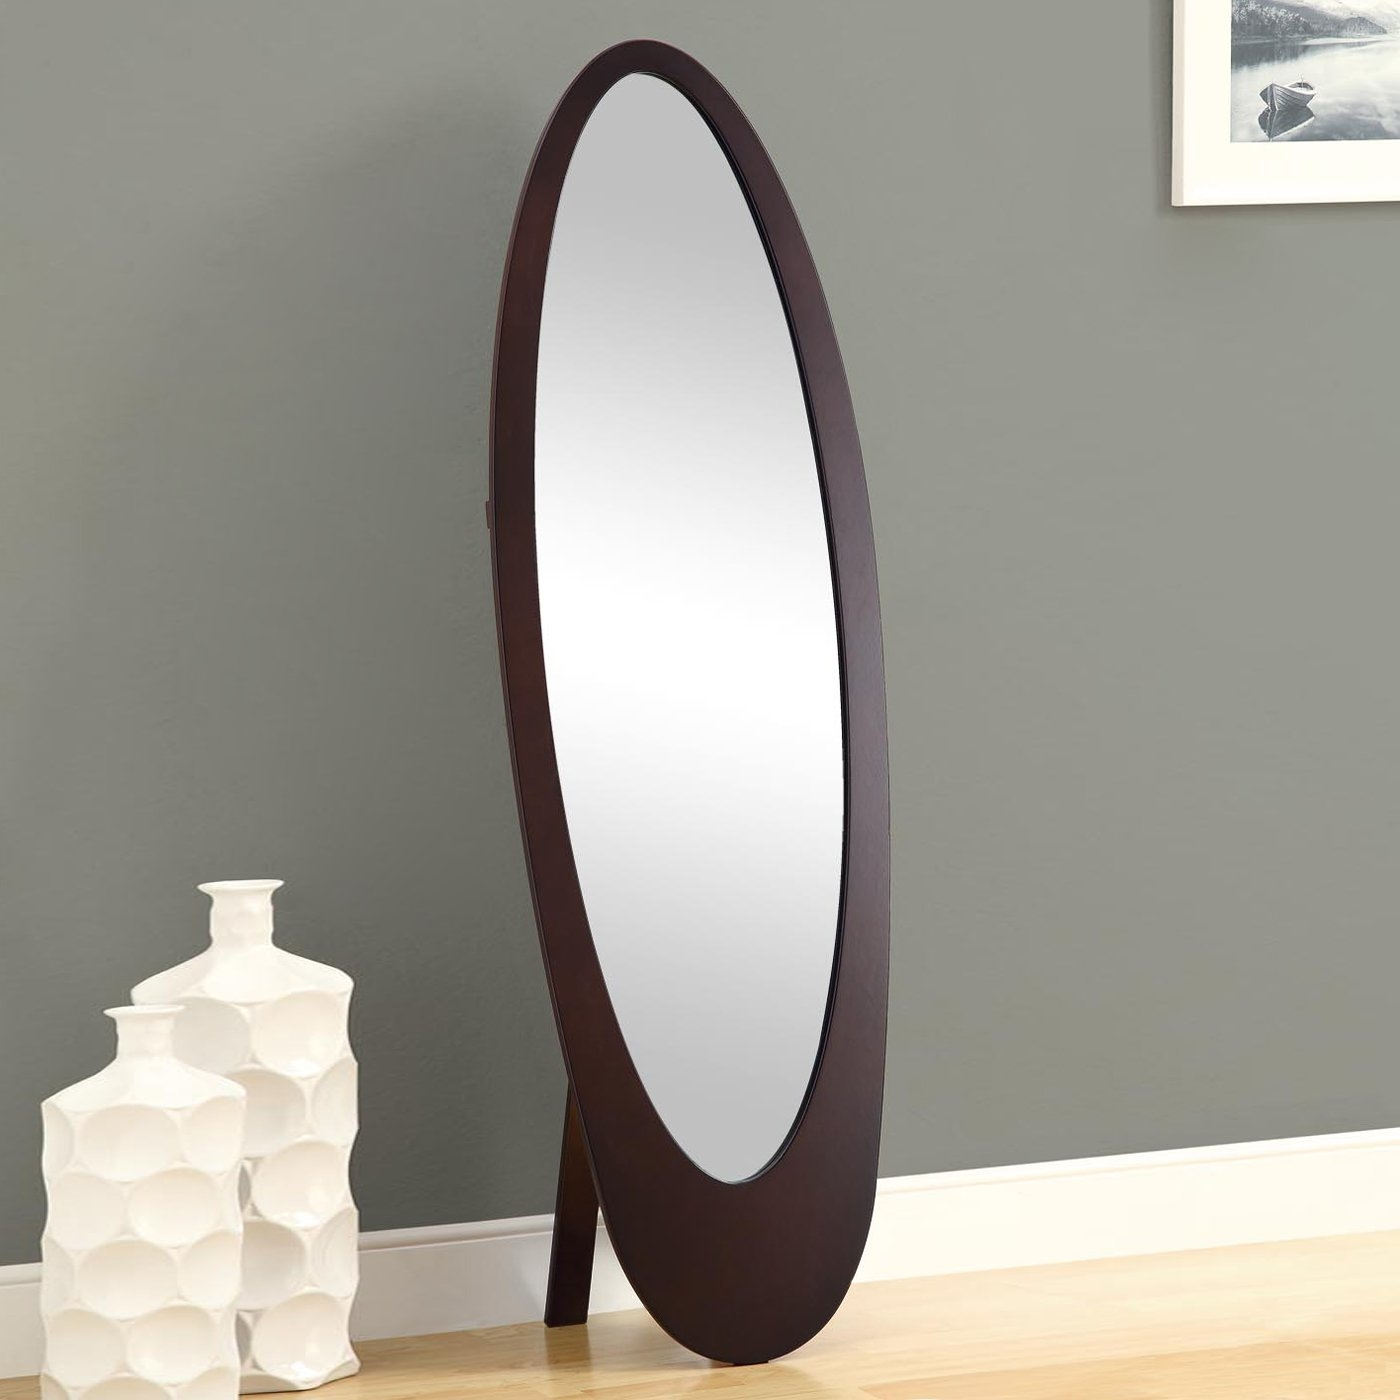 Flooring Imposing Floording Mirror Photos Inspirations Houses For Free Standing Oval Mirror (Image 9 of 15)